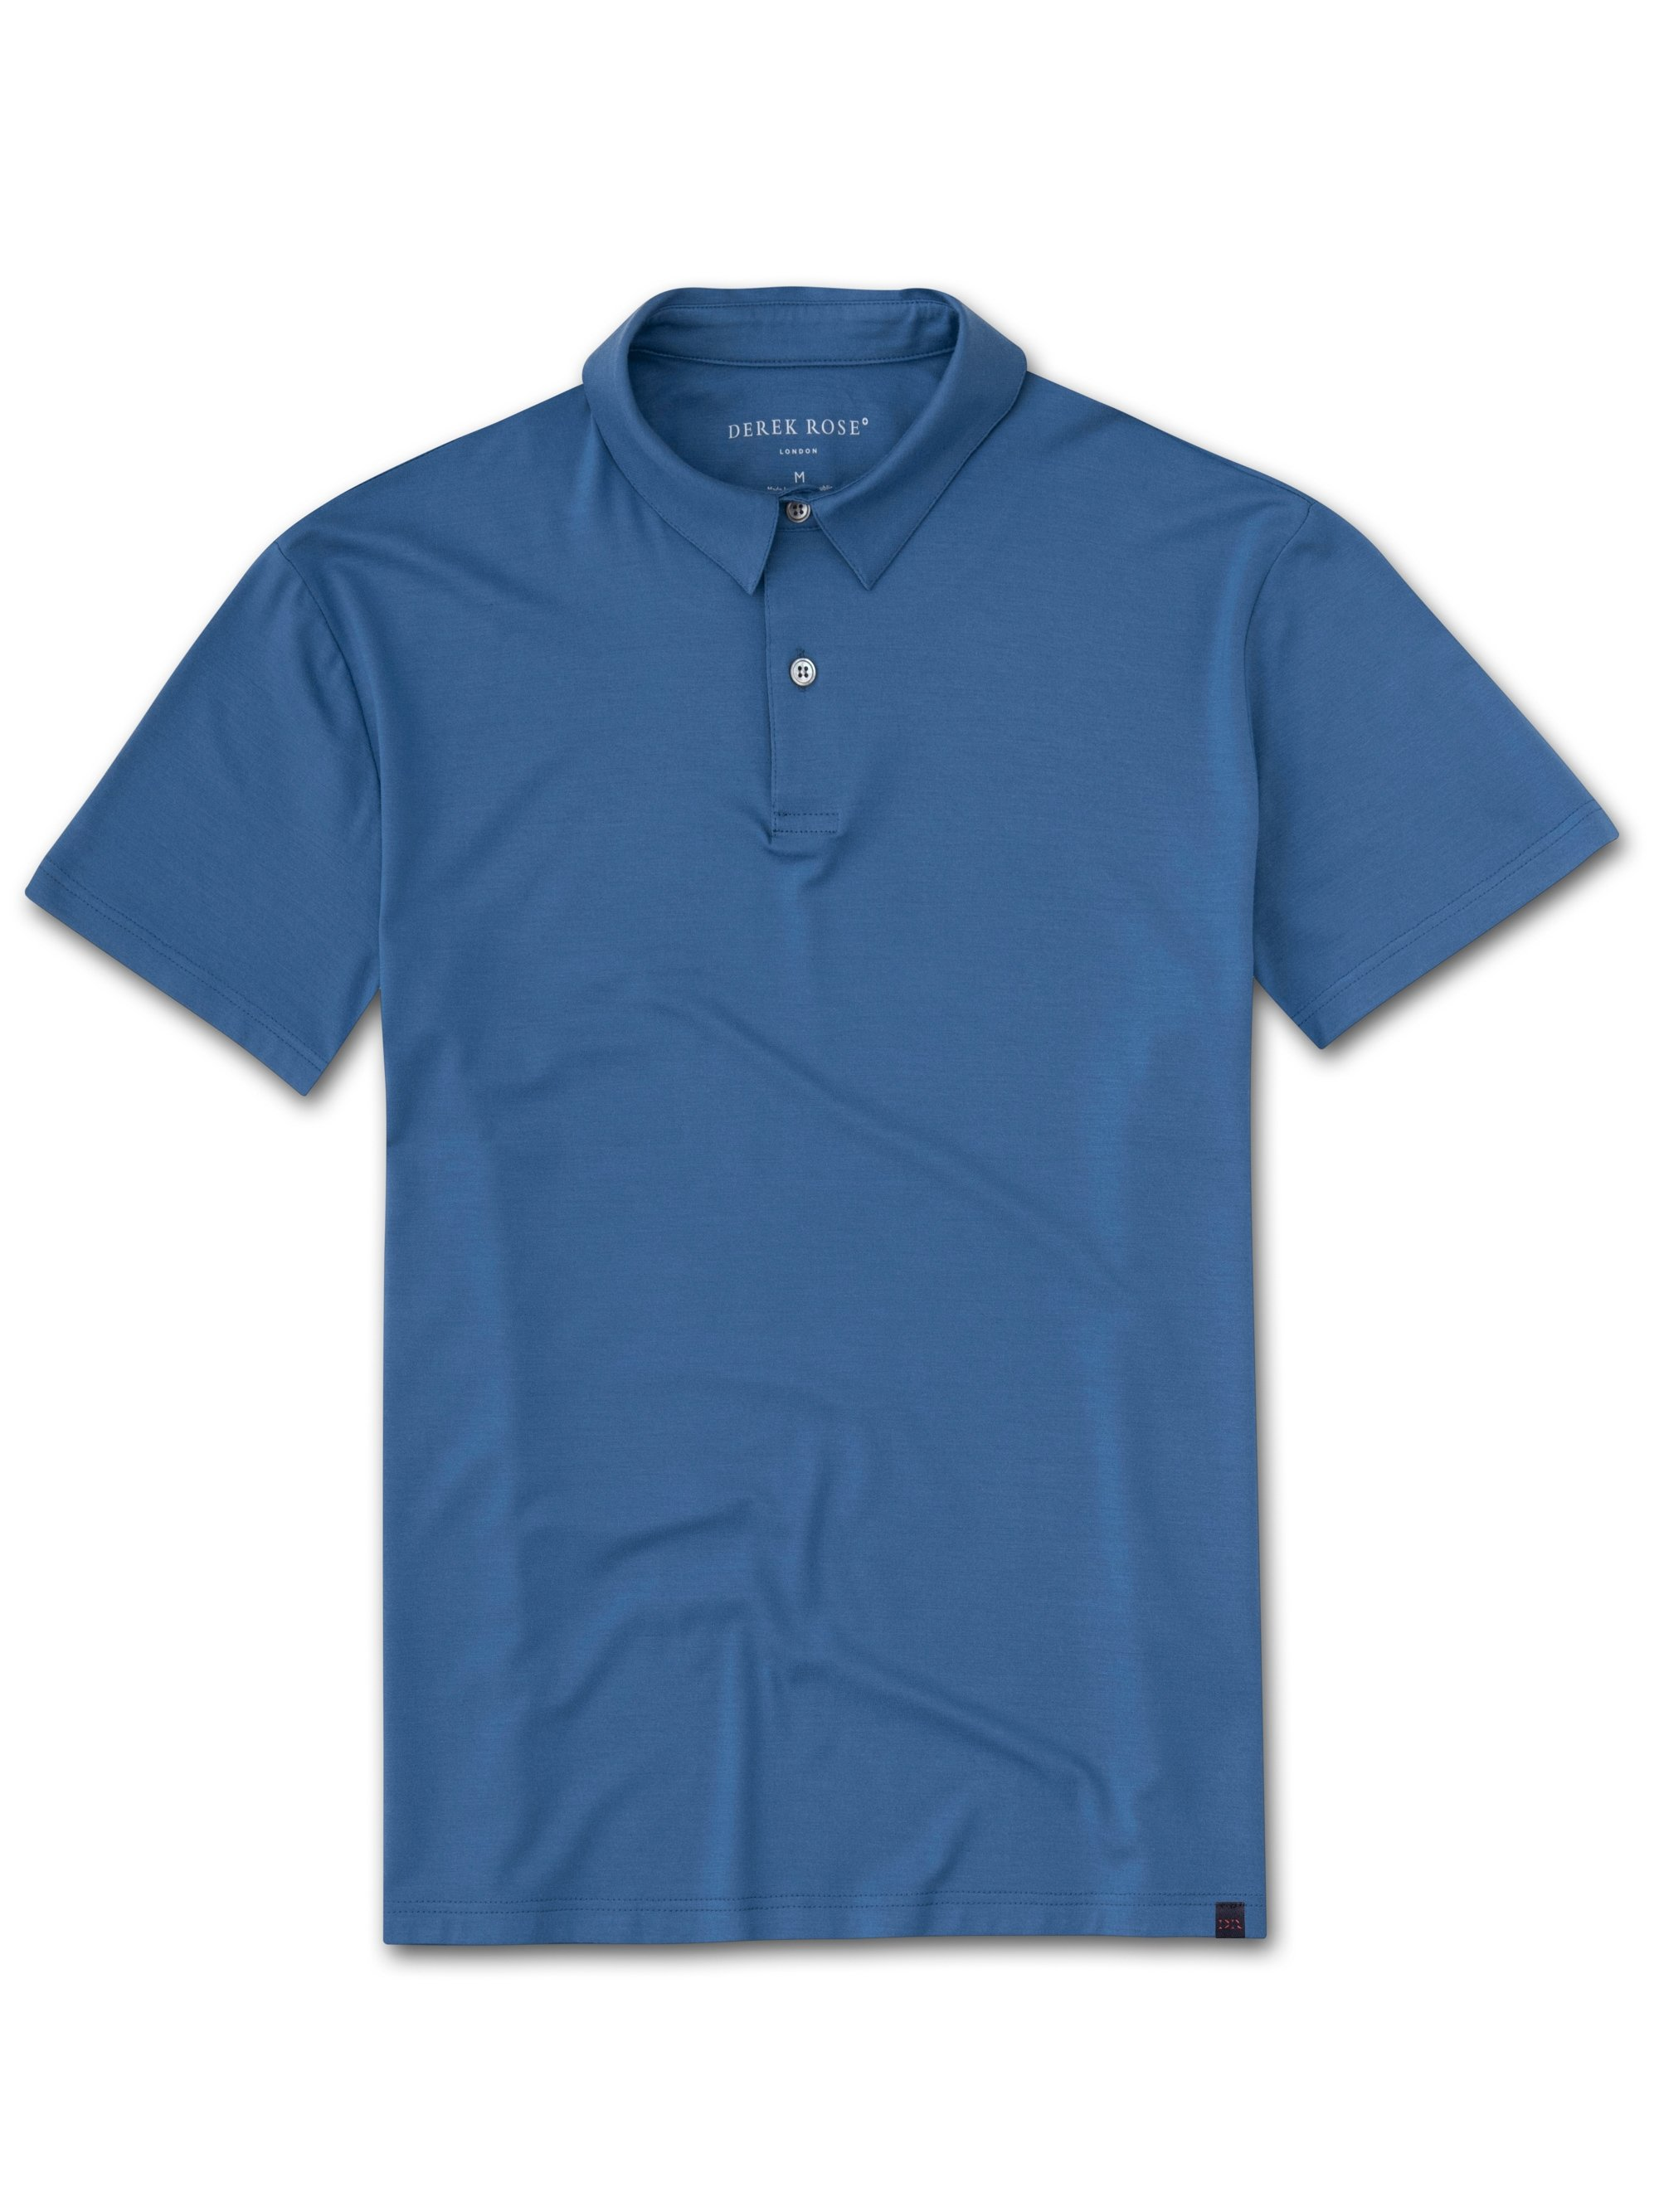 Men's Short Sleeve Polo Shirt Basel 9 Micro Modal Stretch Blue